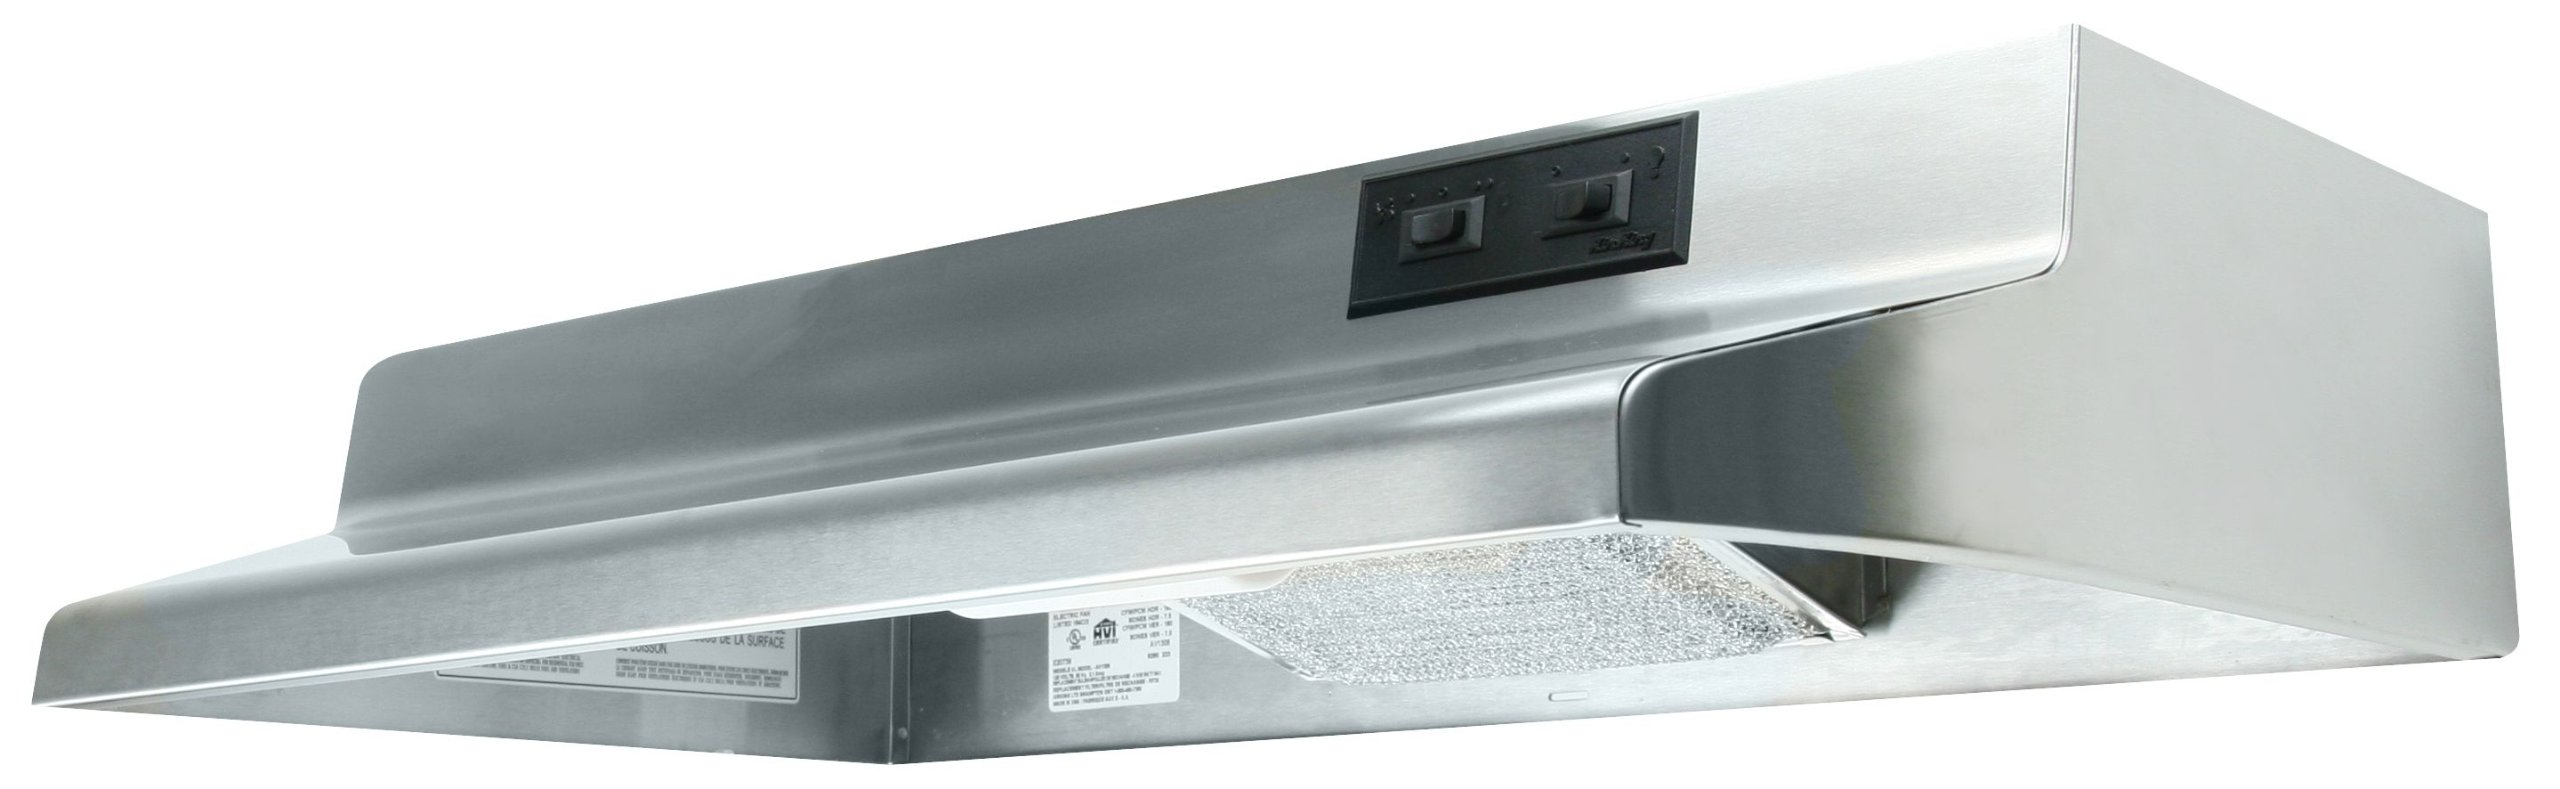 Air King AD1218 Advantage Ductless Under Cabinet Range Hood with 2-Speed Blower, 21-Inch Wide, Stainless Steel Finish